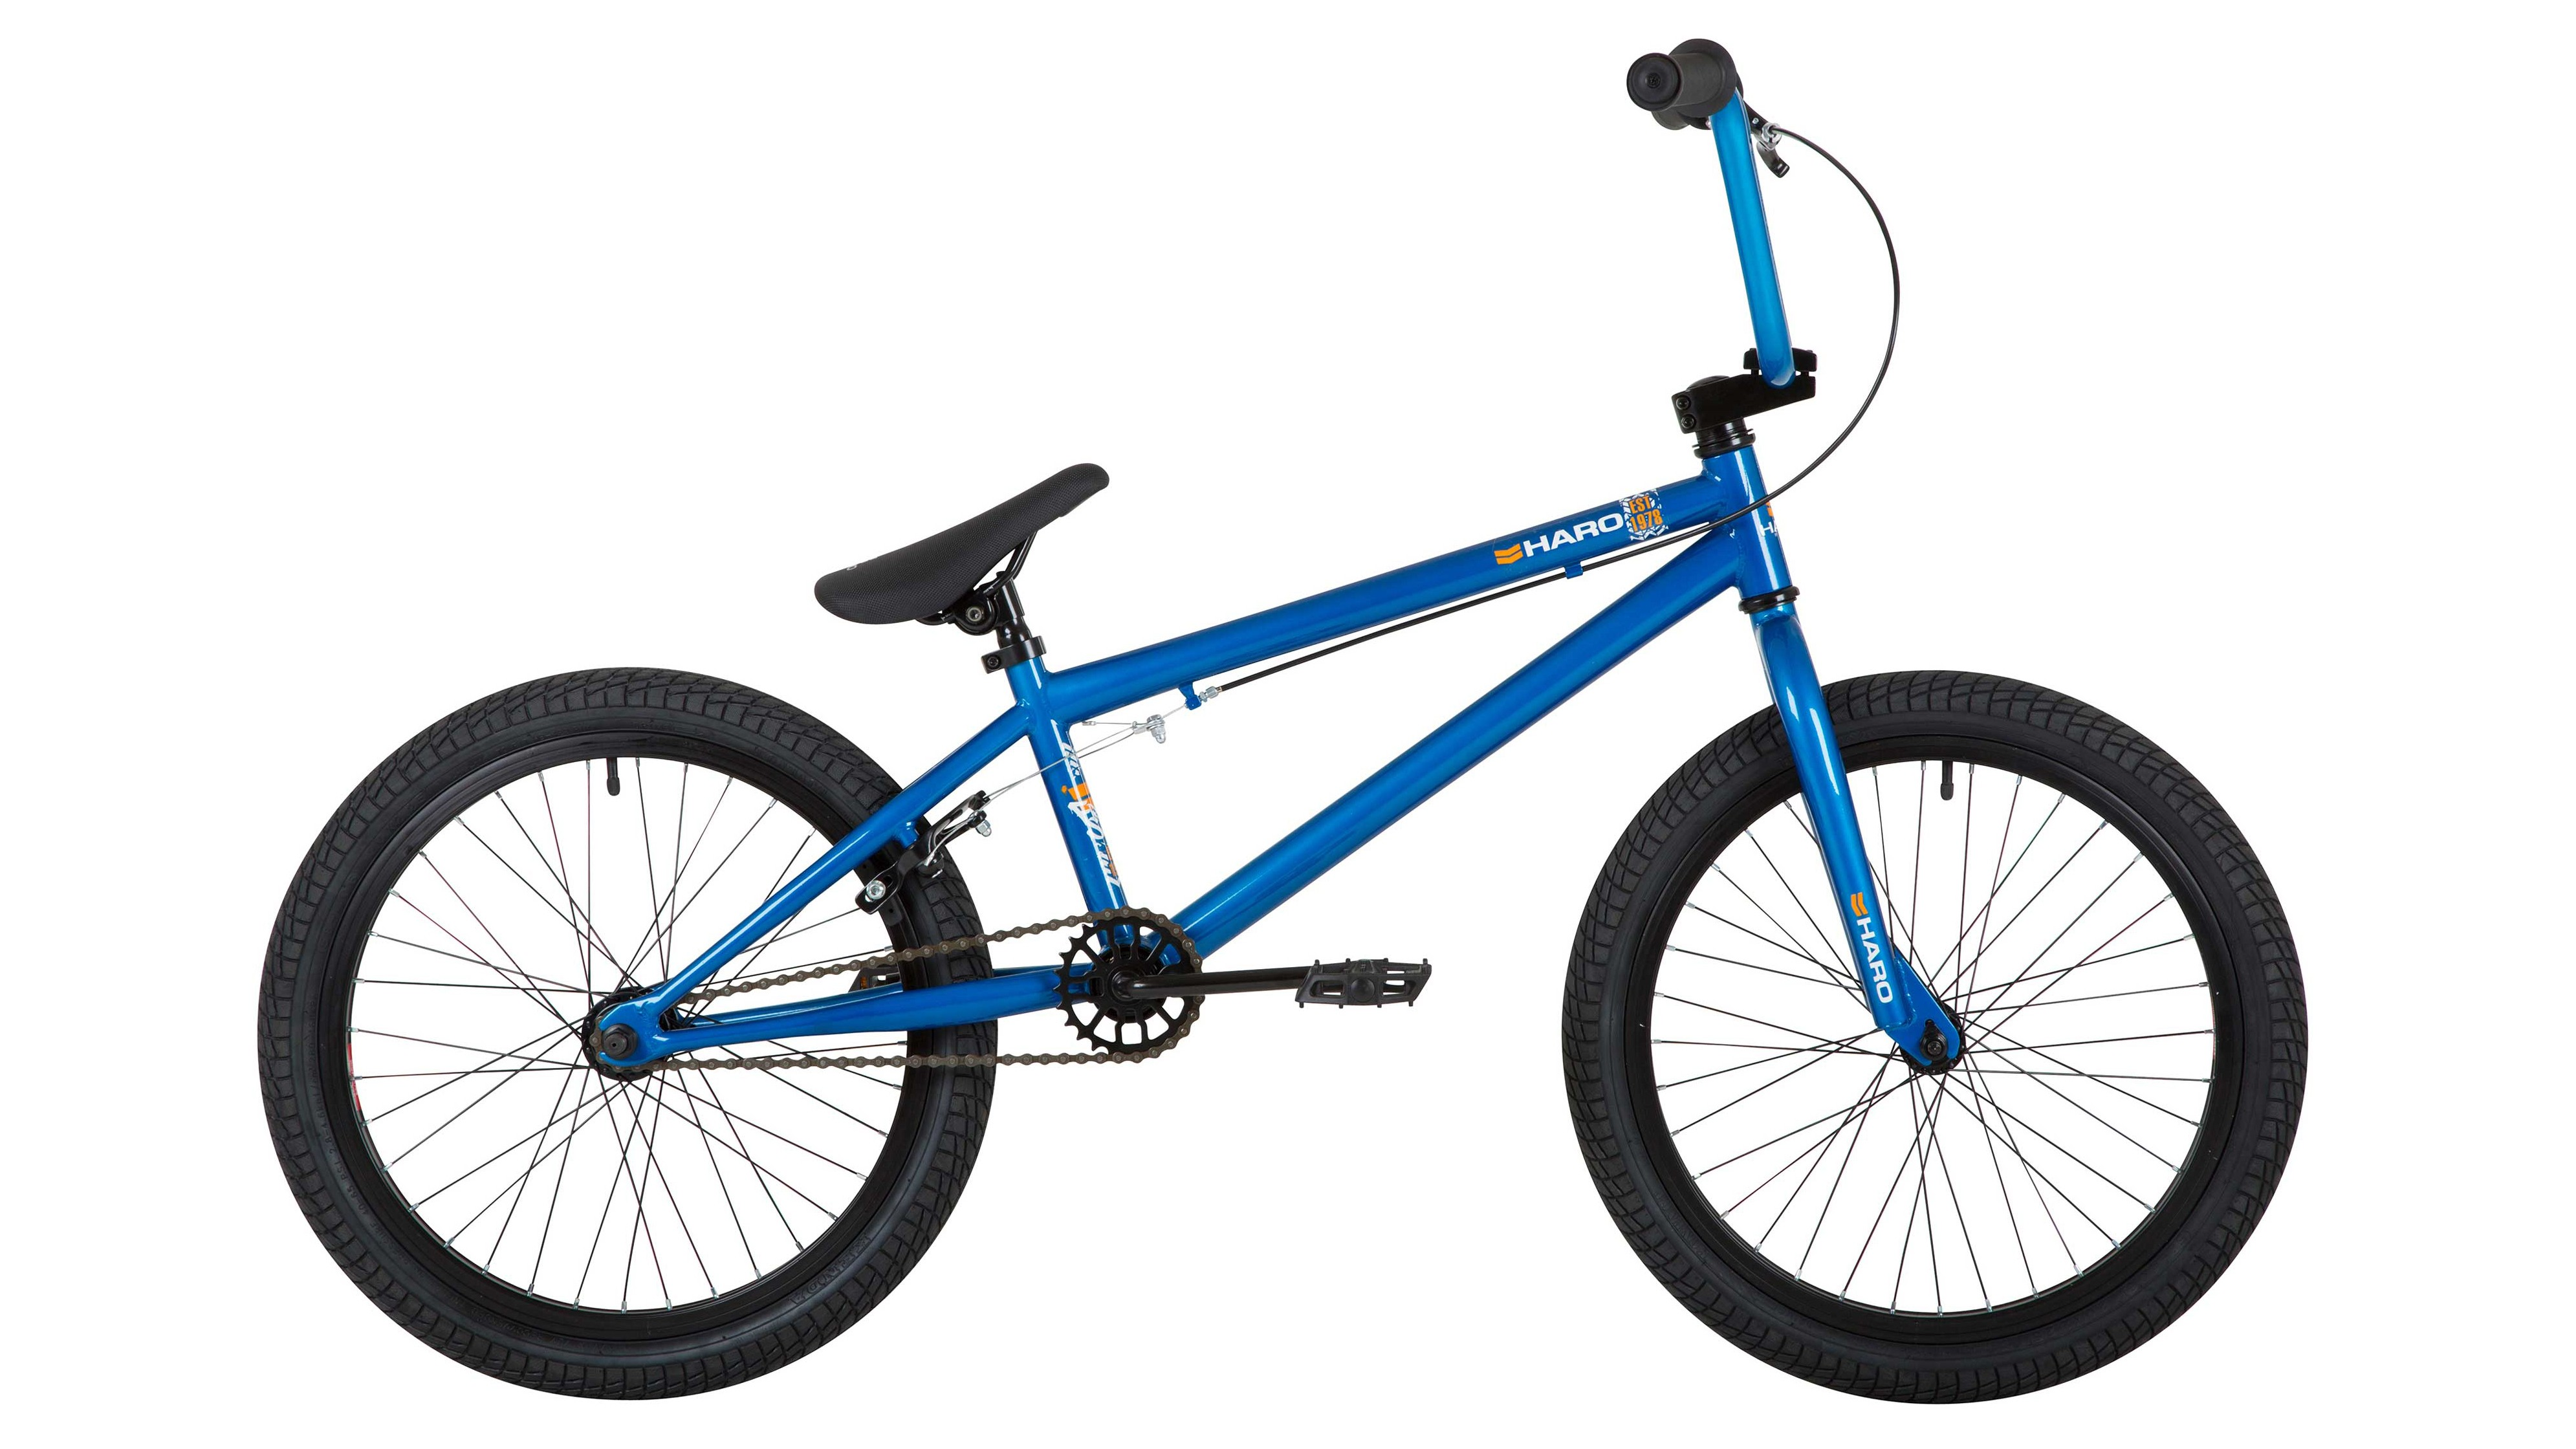 BMX's are still cool, right?